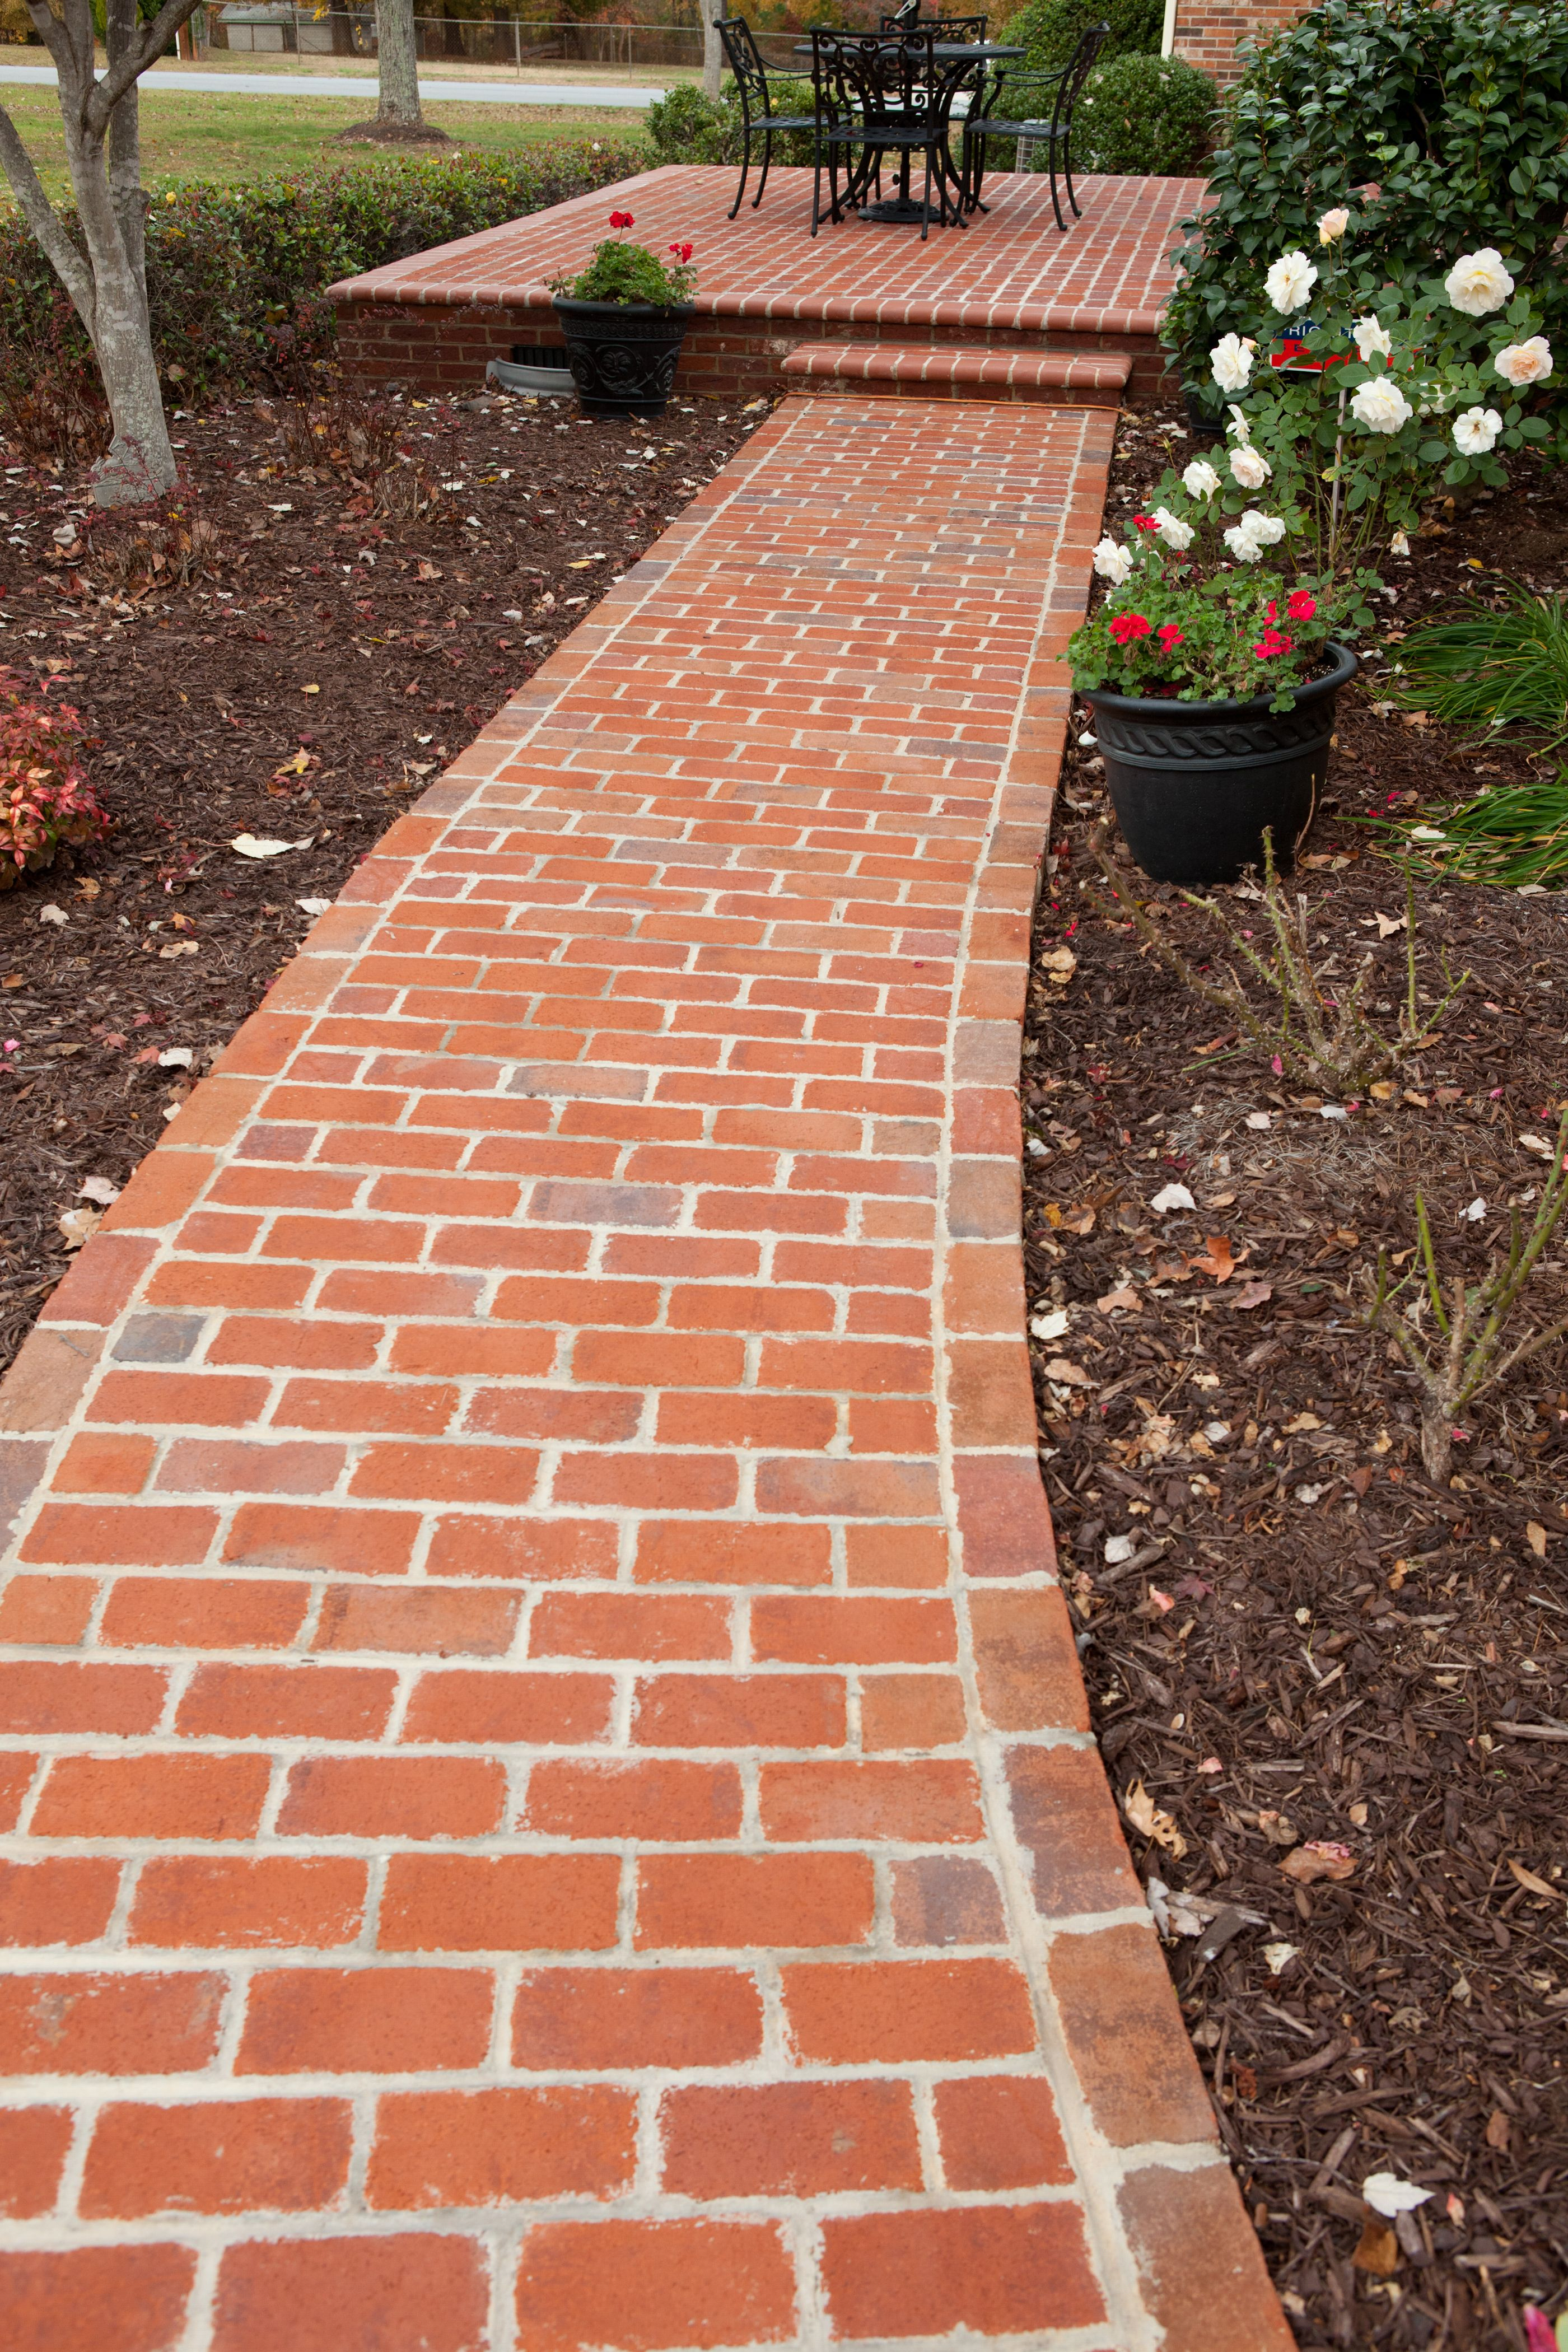 Brick Concrete Walkway Design Front Of House Part - 28: Exterior Brick Lined Walkway Brick And Concrete Walkway Concrete Walkway  With Brick Border How To Lay Brick Walkway With Mortar Brick Walkway Lined  Design ...